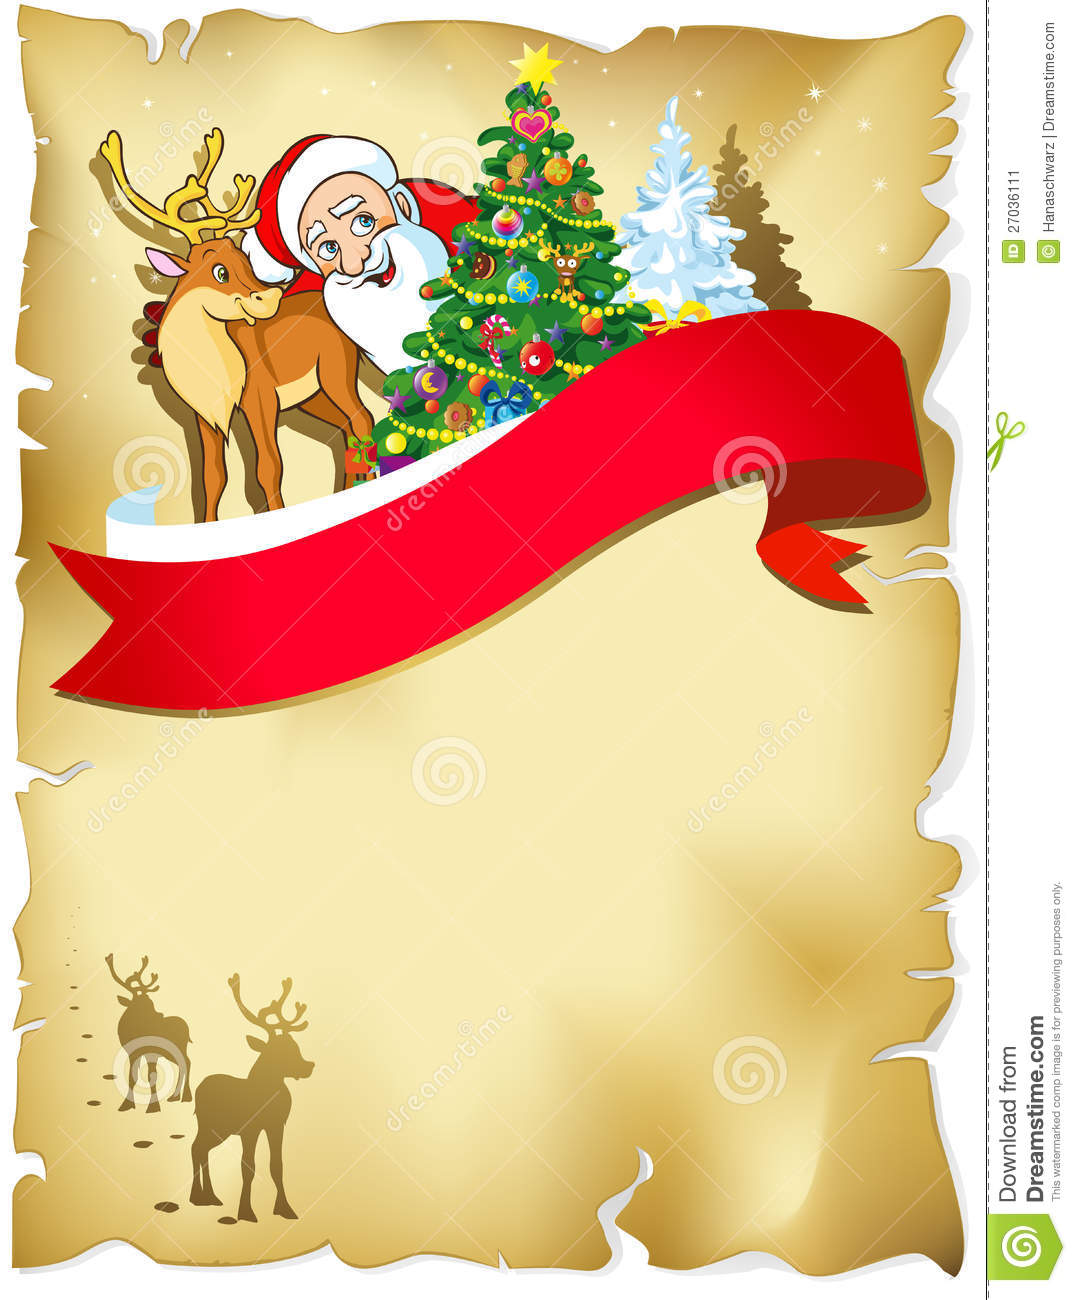 Merry Christmas Frame Stock Image - Image: 27036111